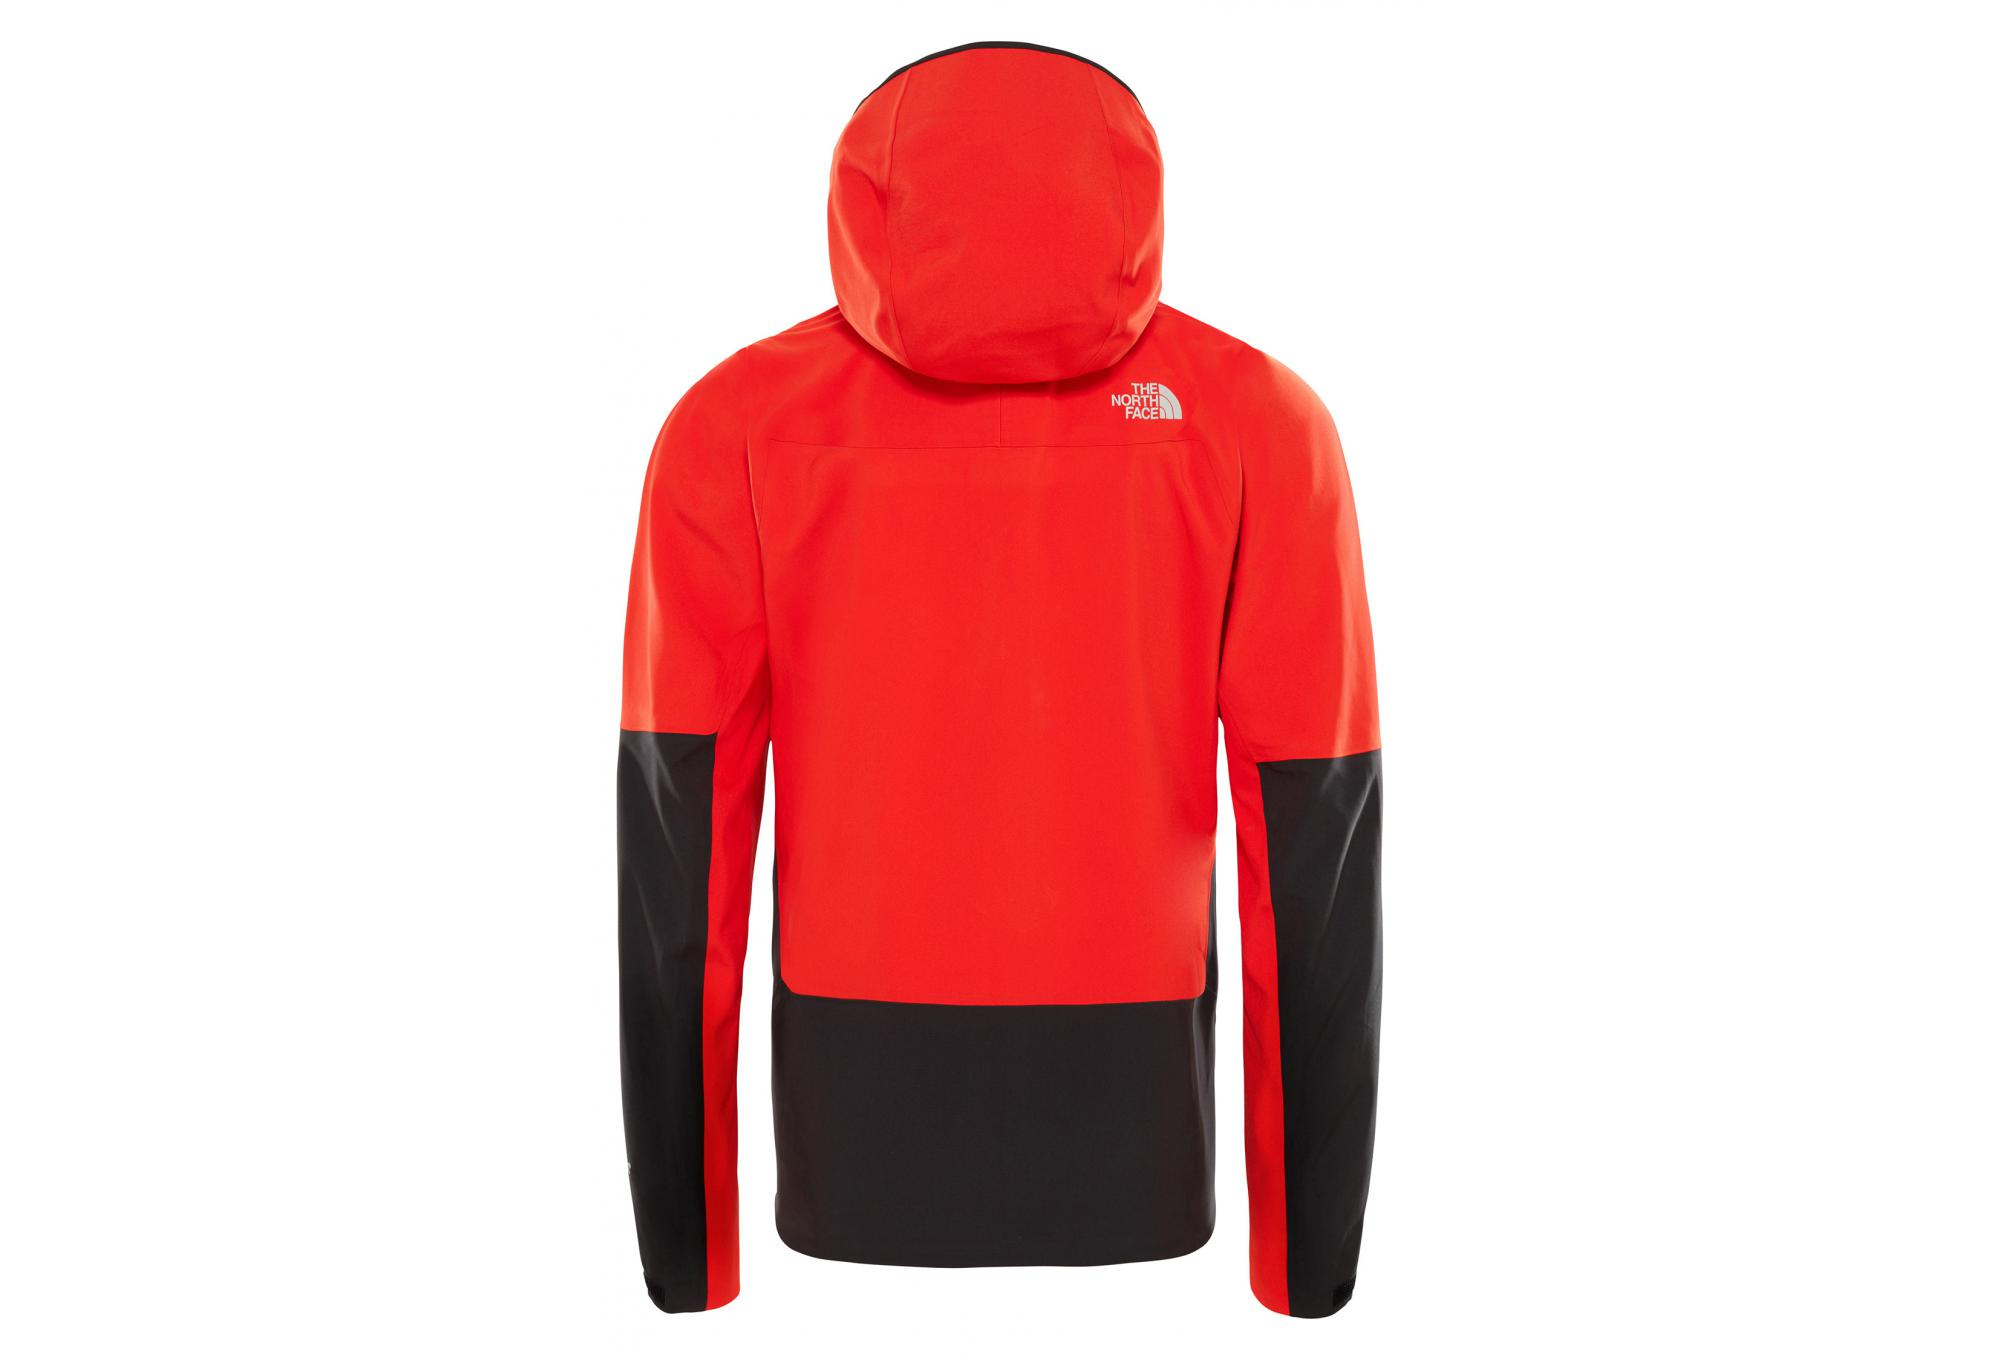 311babf35 The North Face Waterproof Jacket Apex Flex GTX 2.0 Red Black Men